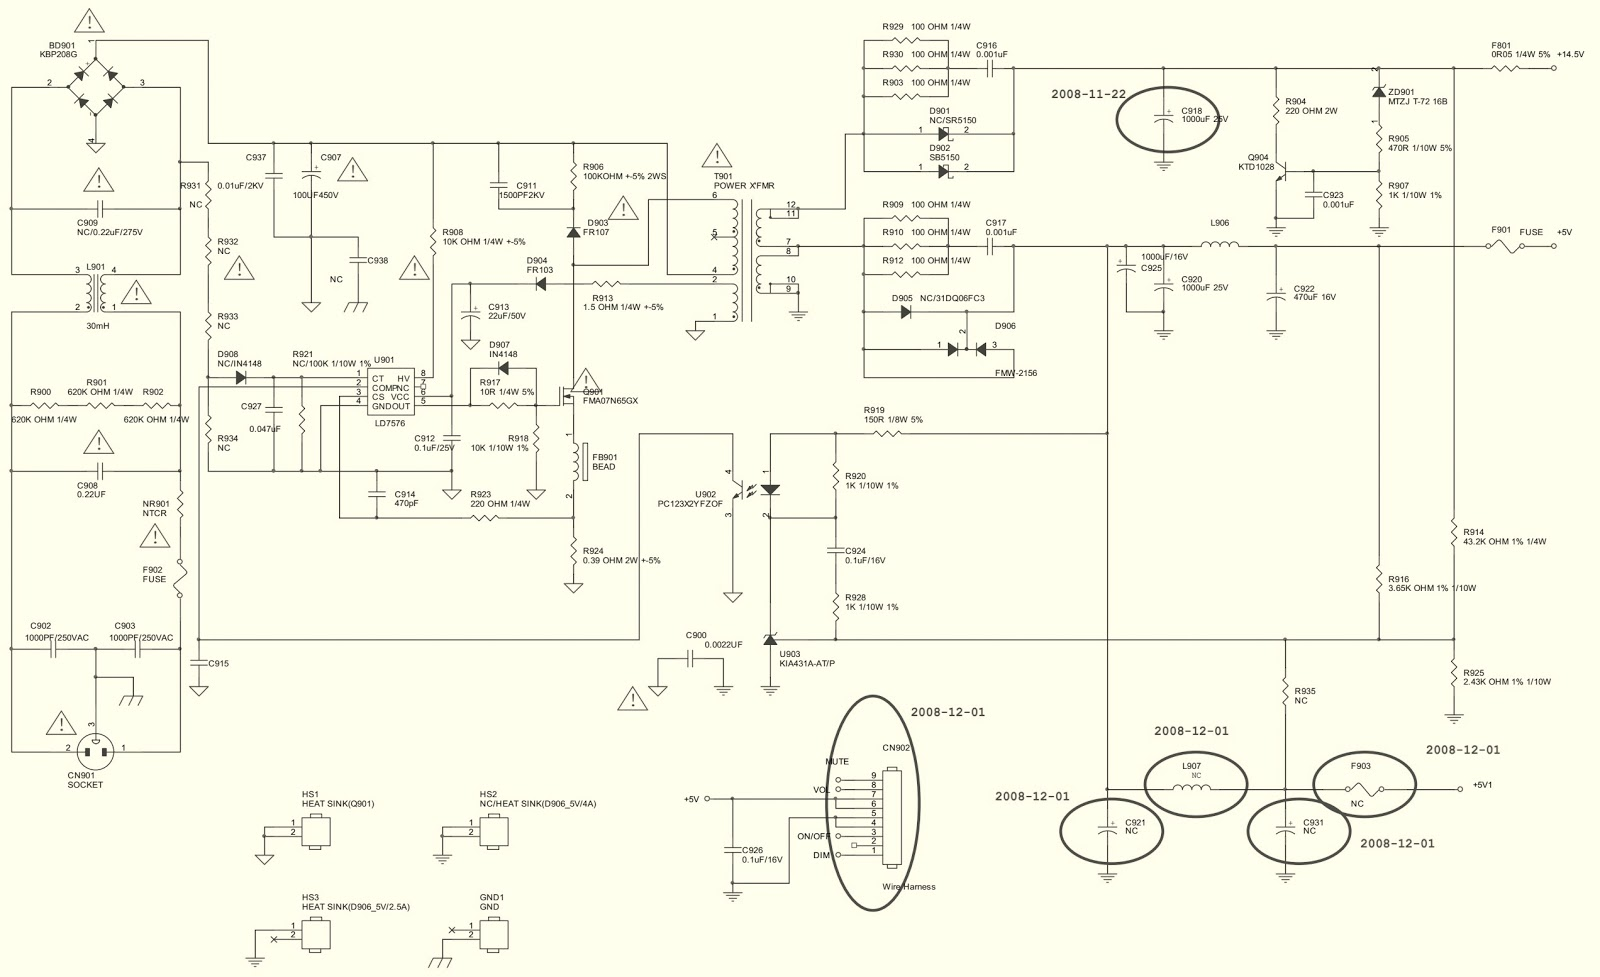 lcd monitor schematic diagram wiring diagrams aoc2236vwa lcd monitor circuit diagram 7155g2892 power board lcd monitor [ 1600 x 977 Pixel ]